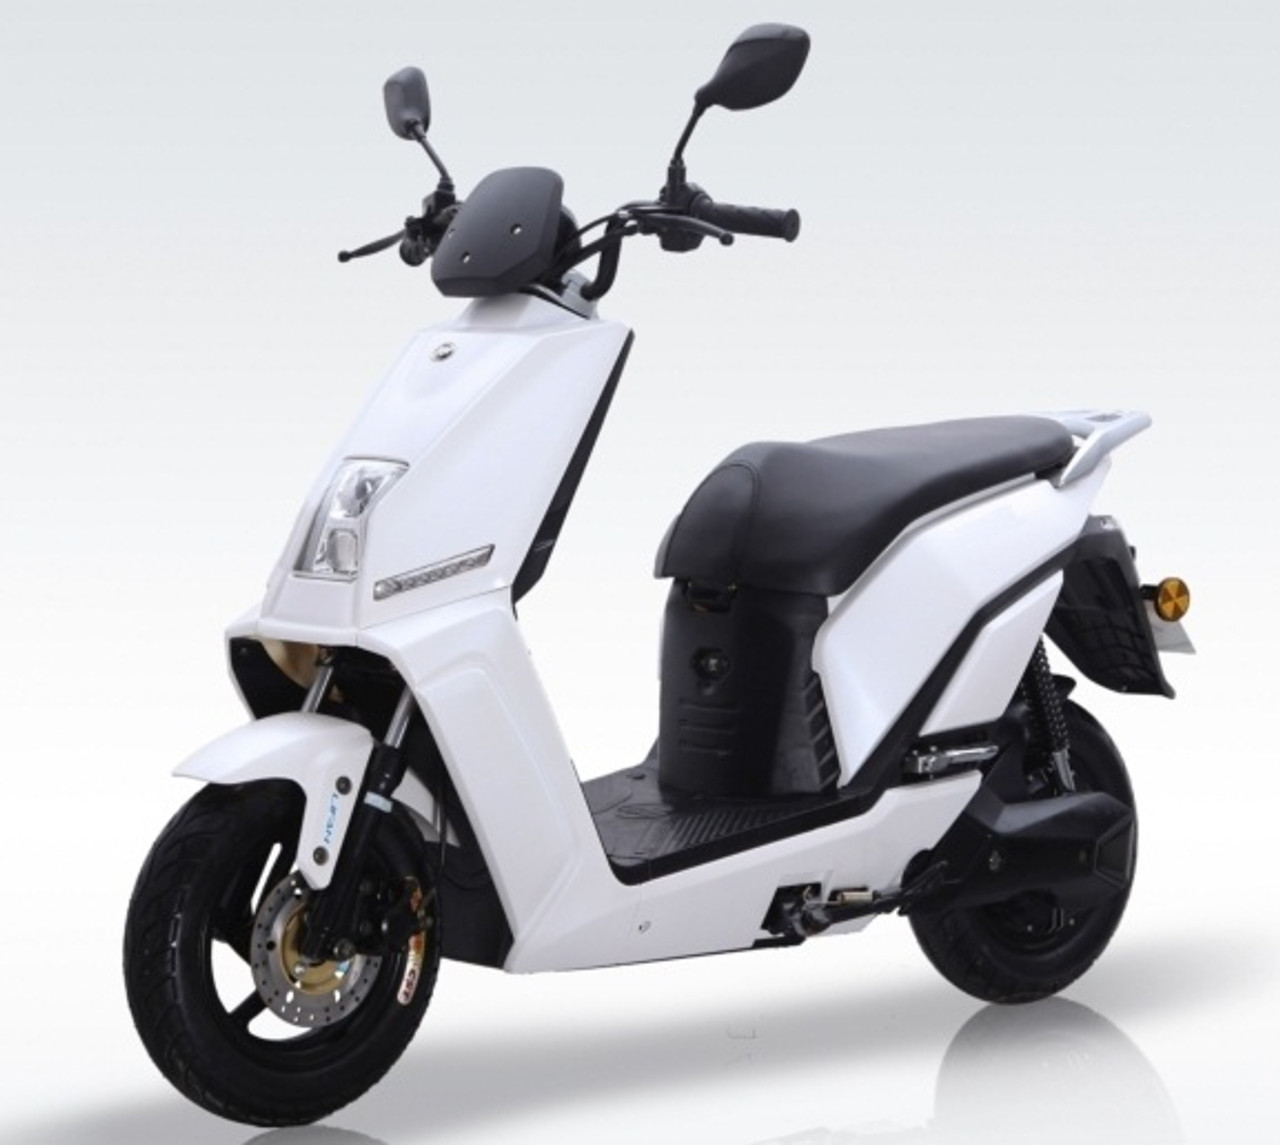 New Lifan Electric Bike Type E3 Free Shipping!